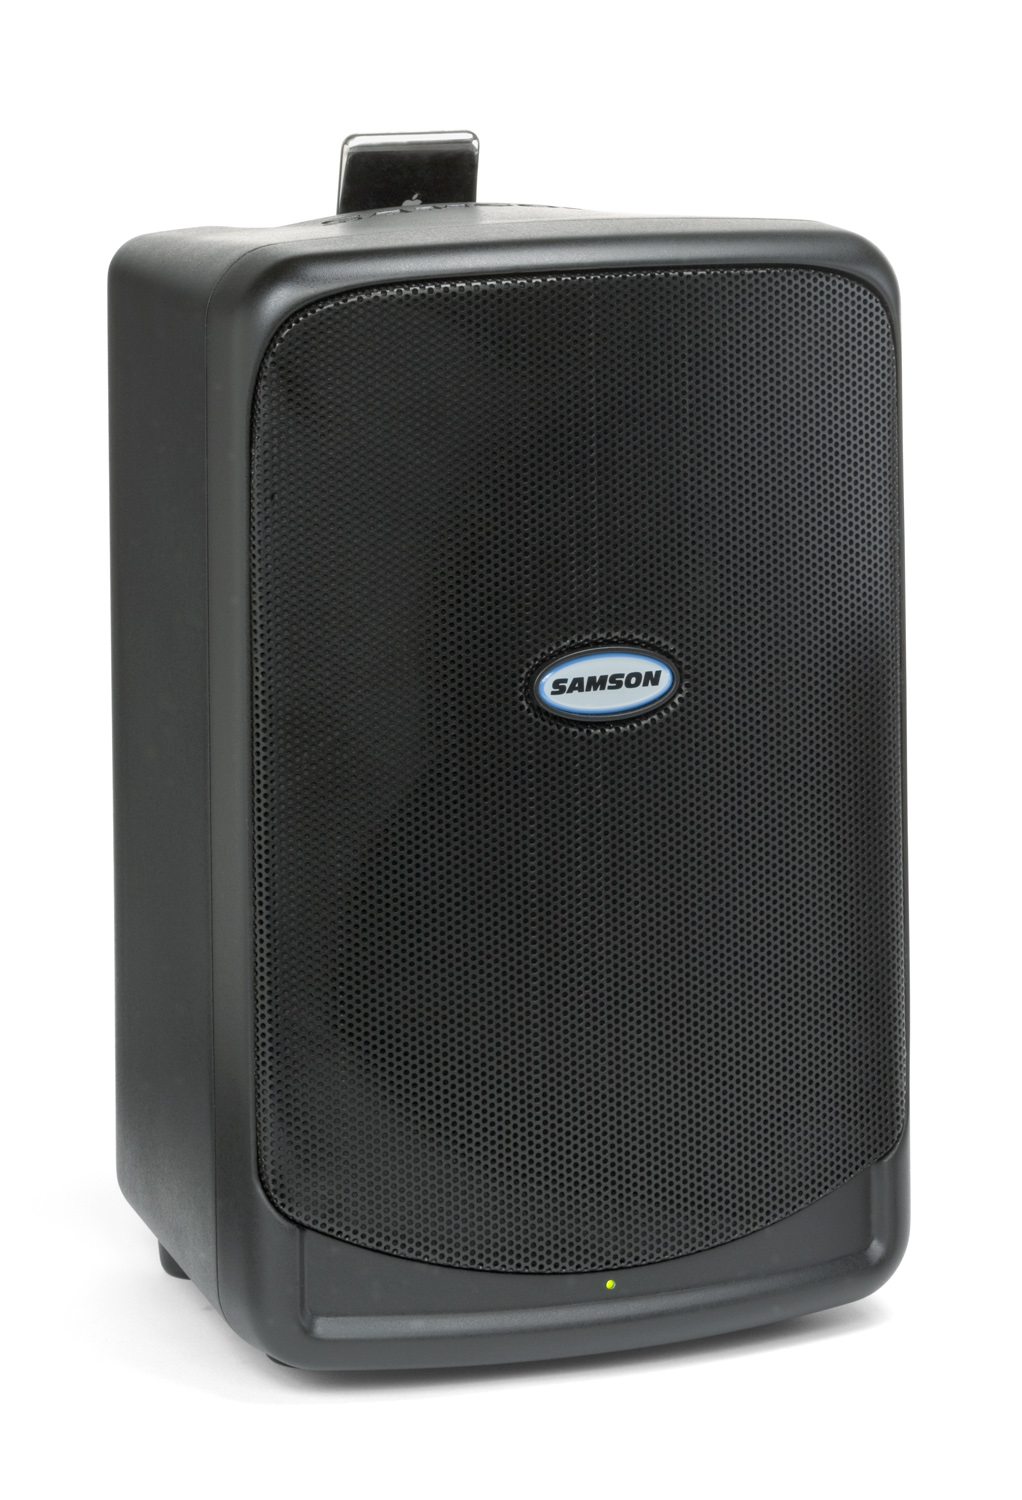 SAMSON EXPEDITION 40I SPEAKER